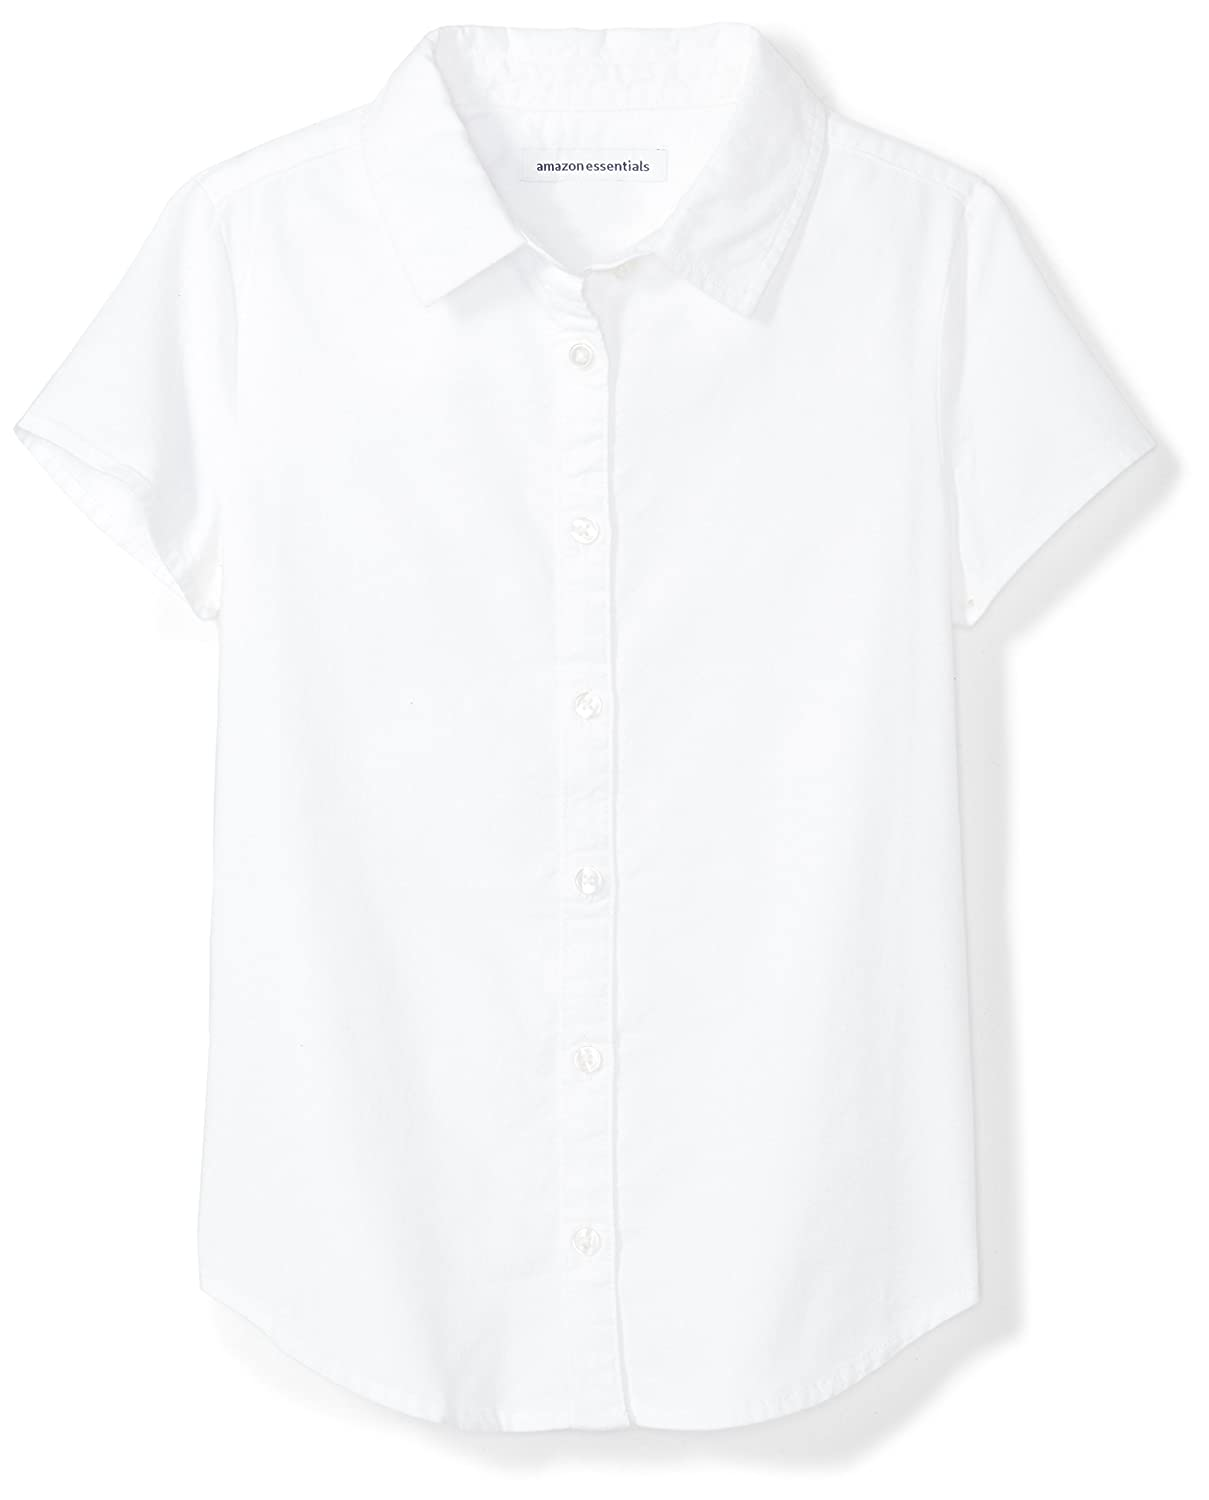 Essentials Girls Short Sleeve Uniform Oxford Shirt